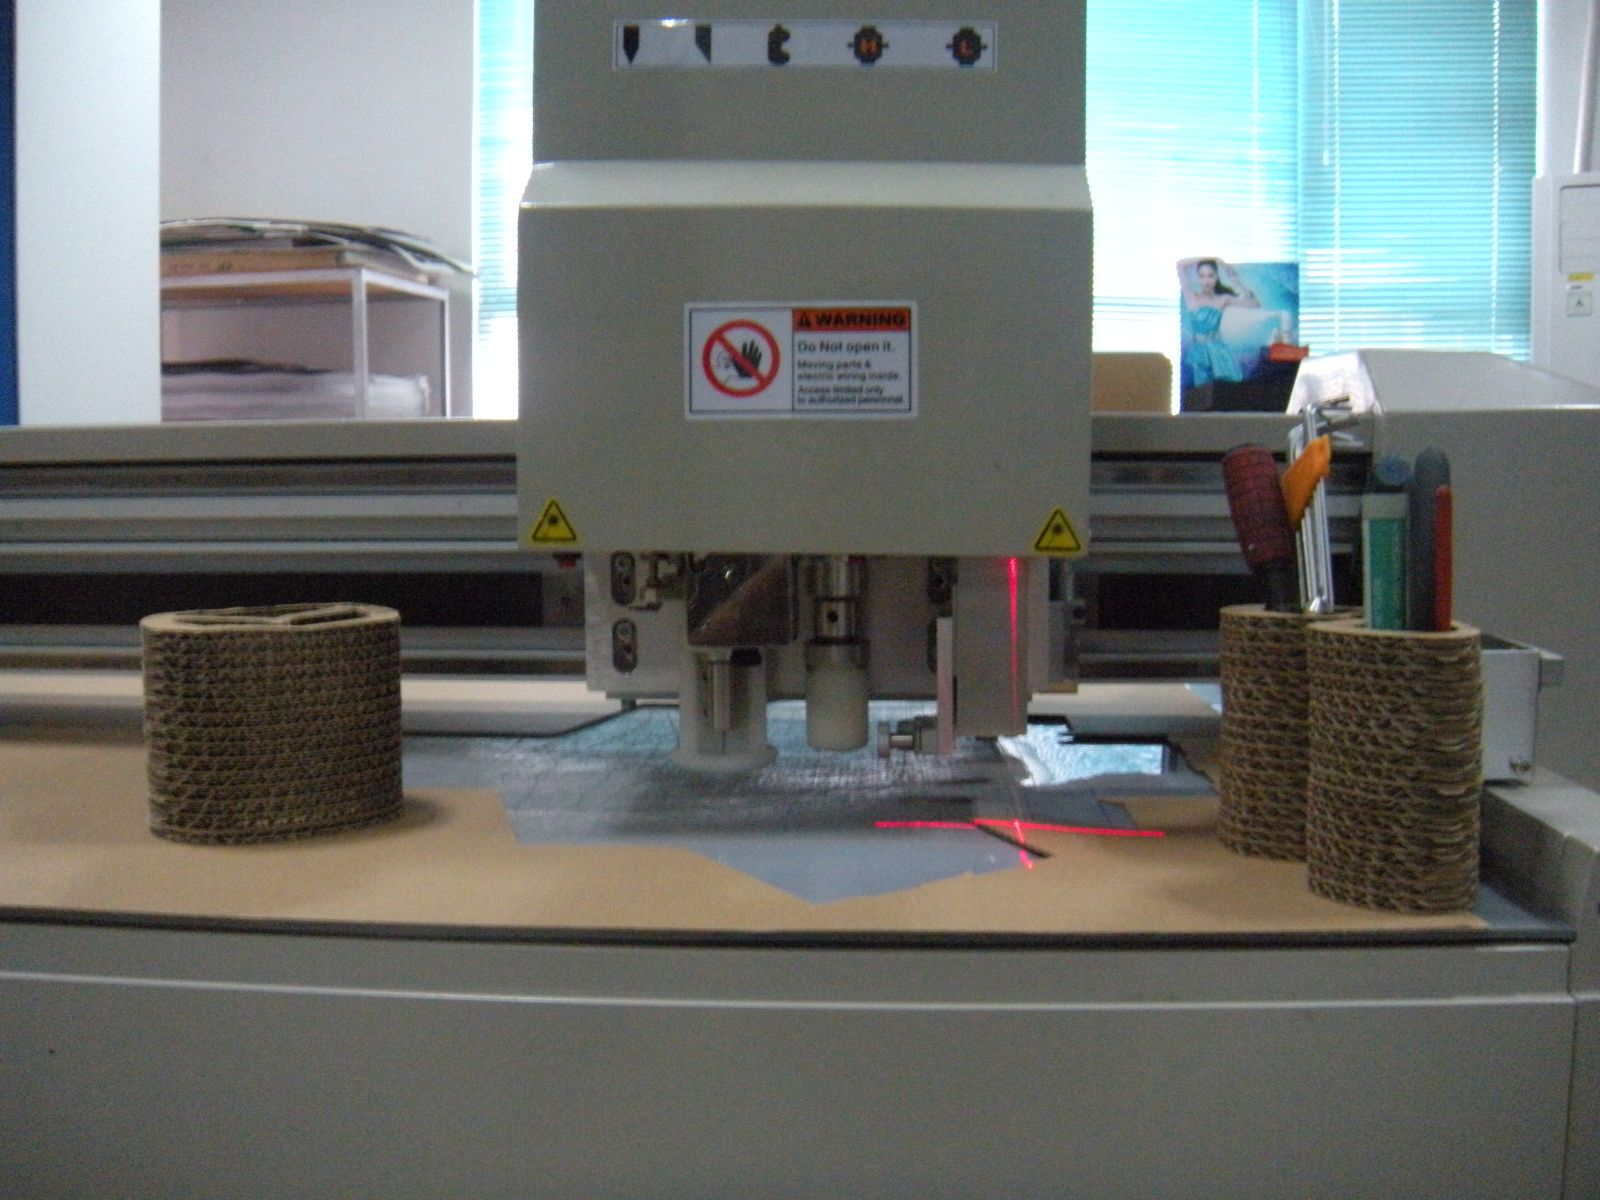 Plotter Cutter Machine Maker Cutter Plotter